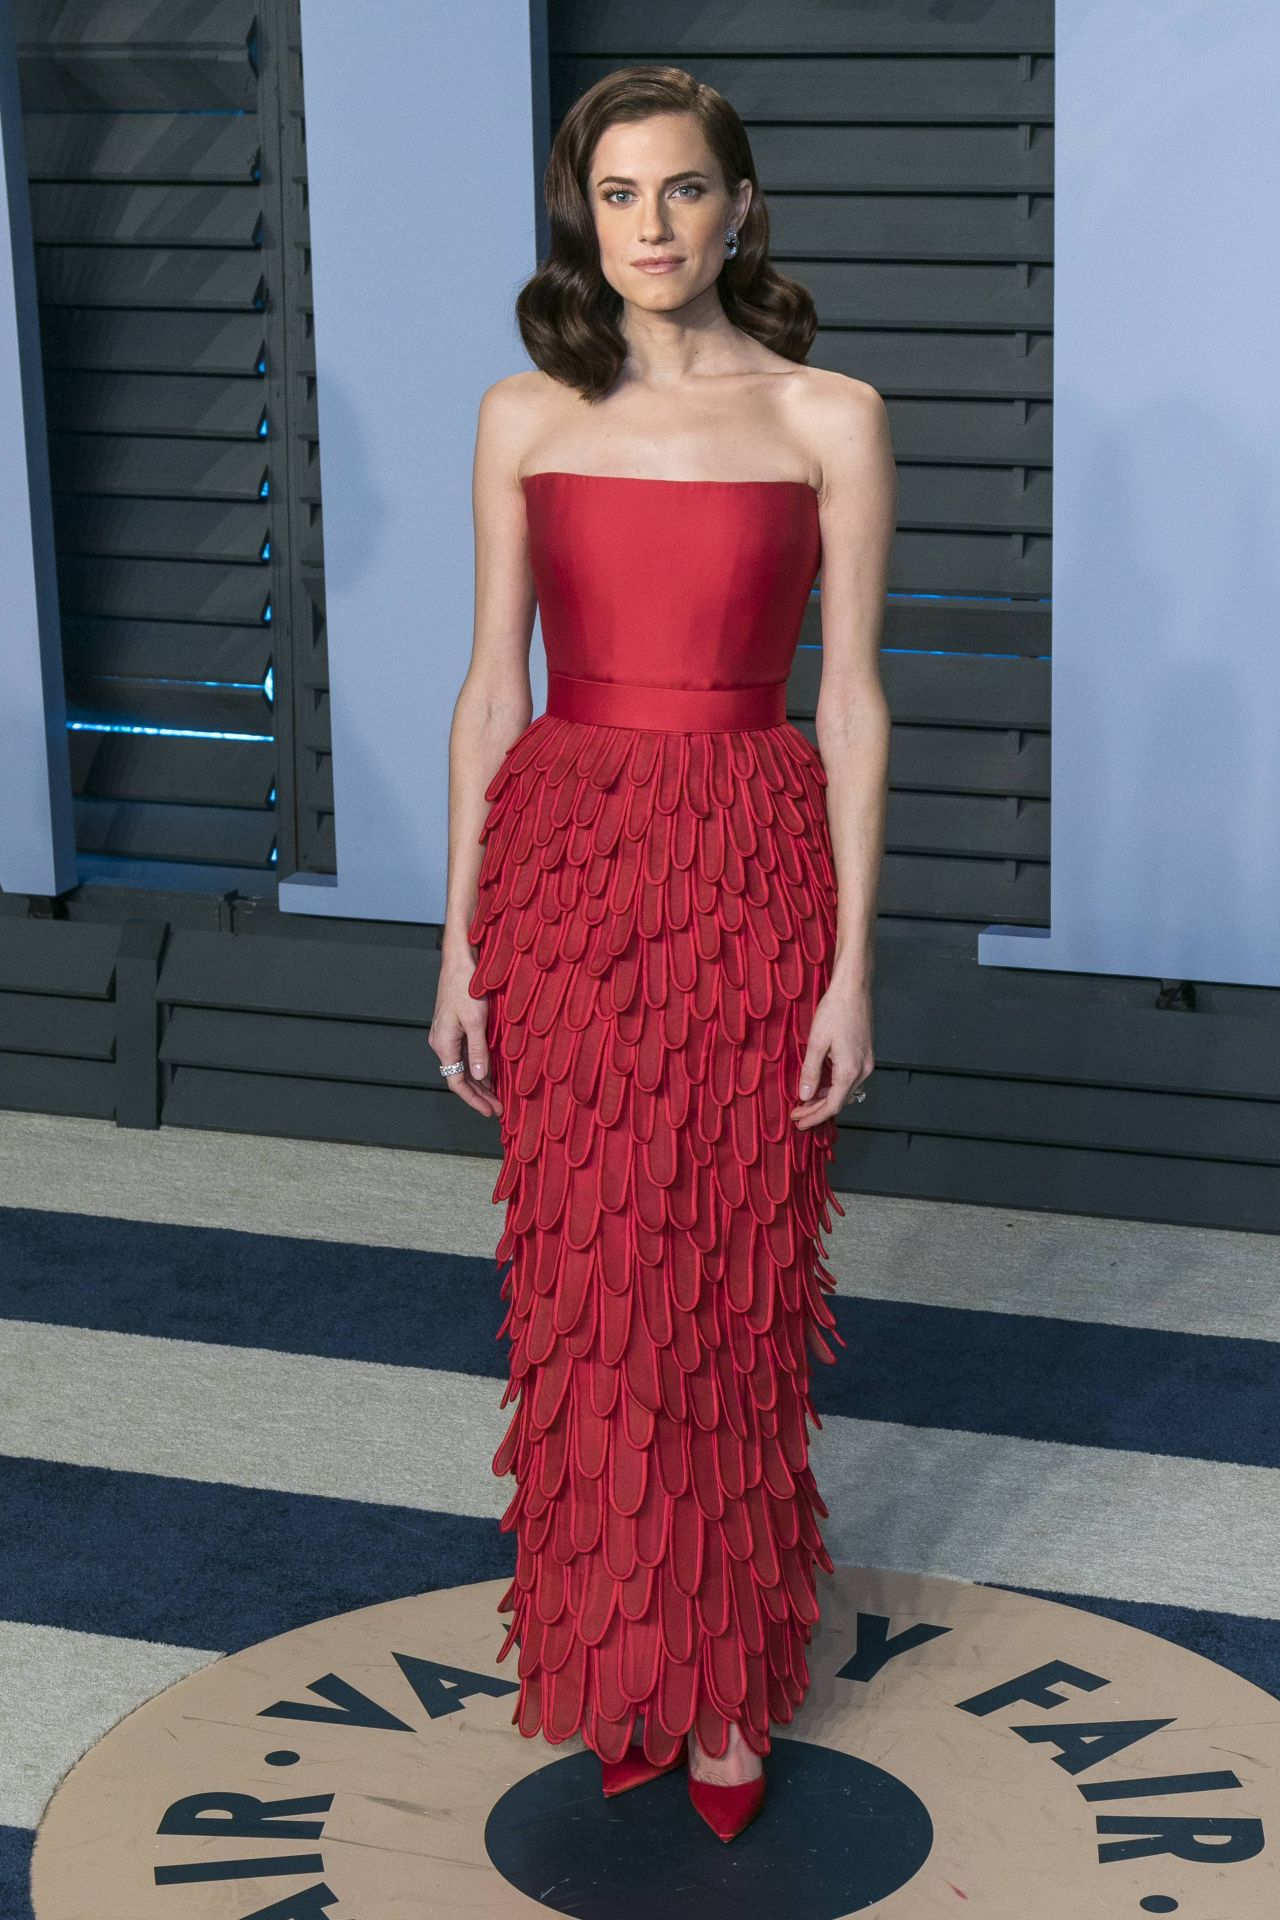 http://celebmafia.com/wp-content/uploads/2018/03/allison-williams-2018-vanity-fair-oscar-party-in-beverly-hills-3.jpg